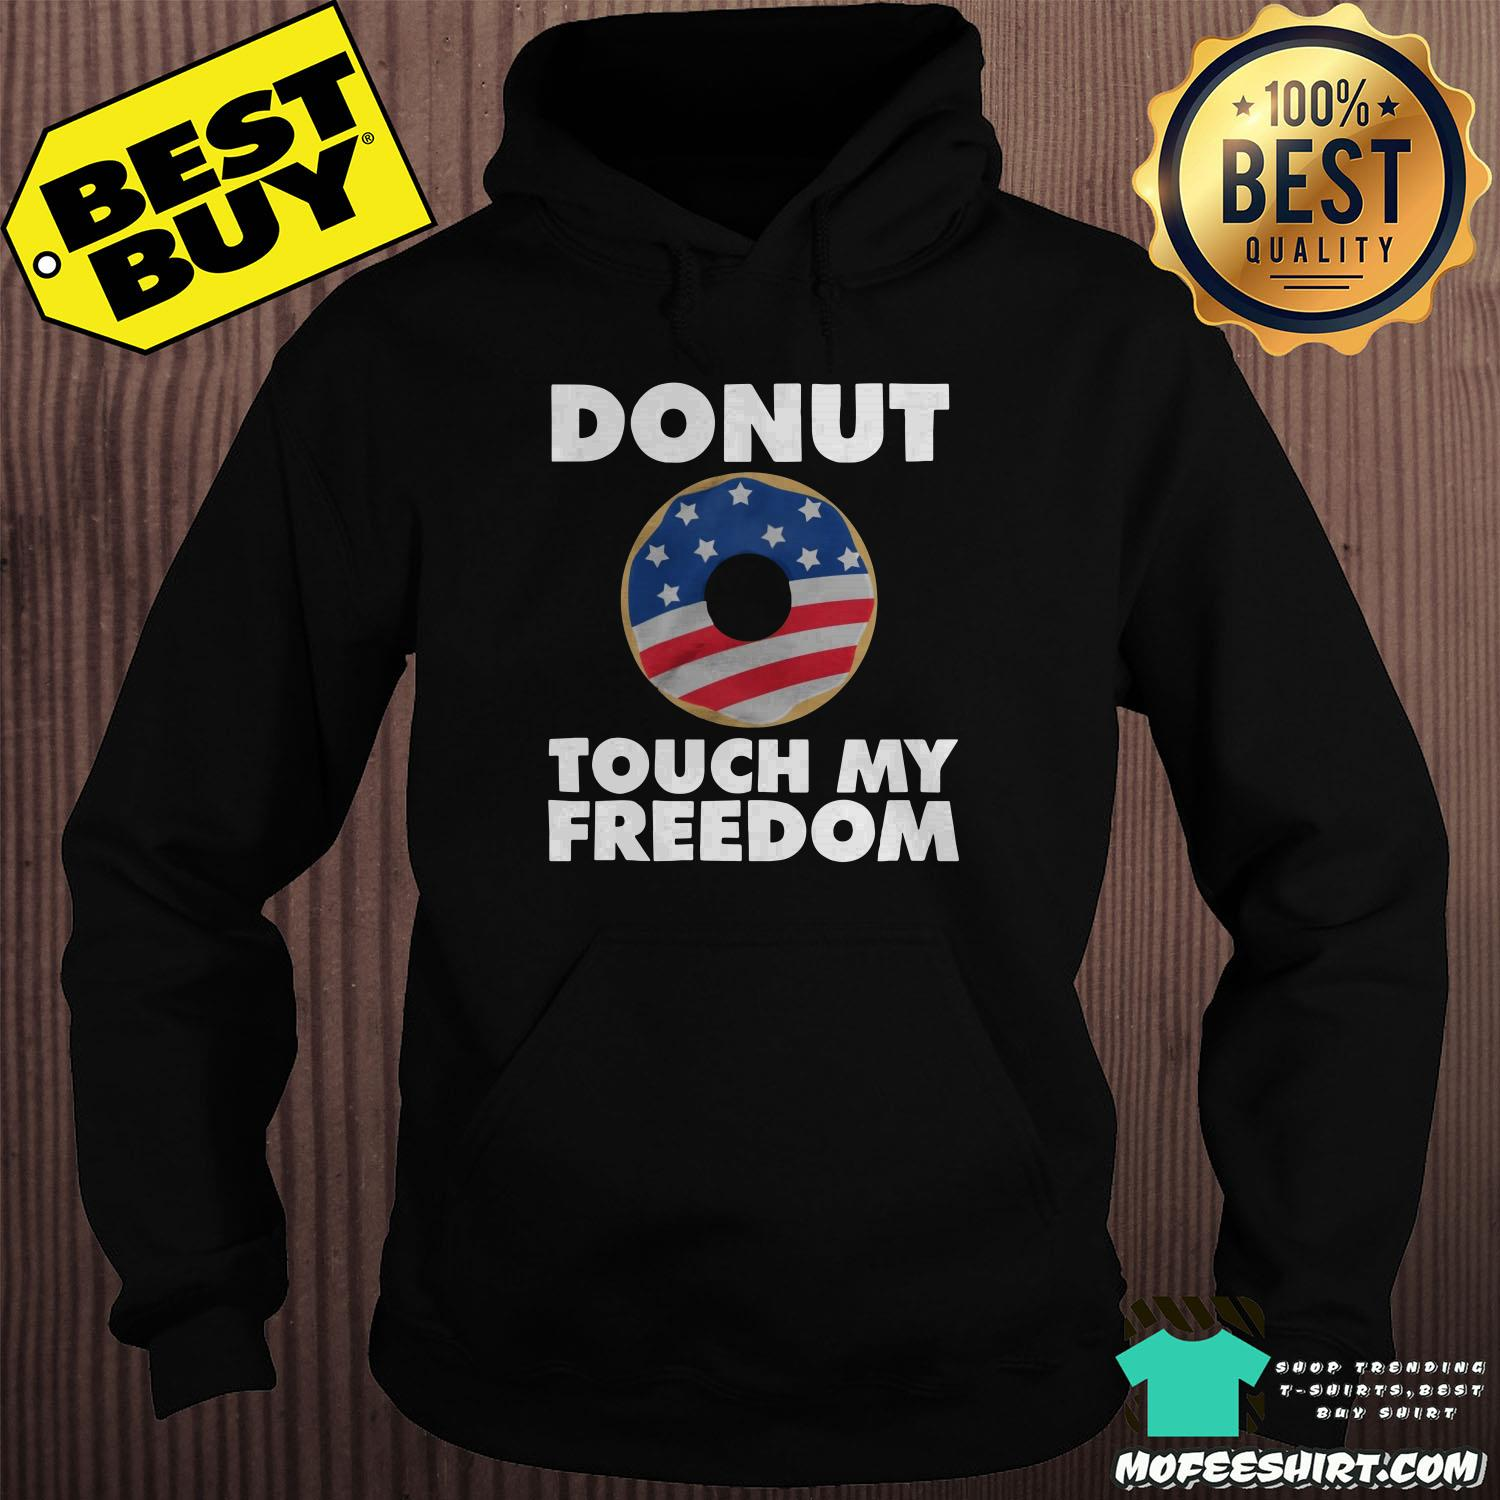 donut touch my freedom america flag 4th of july hoodie - Donut touch my Freedom America Flag 4th Of July shirt